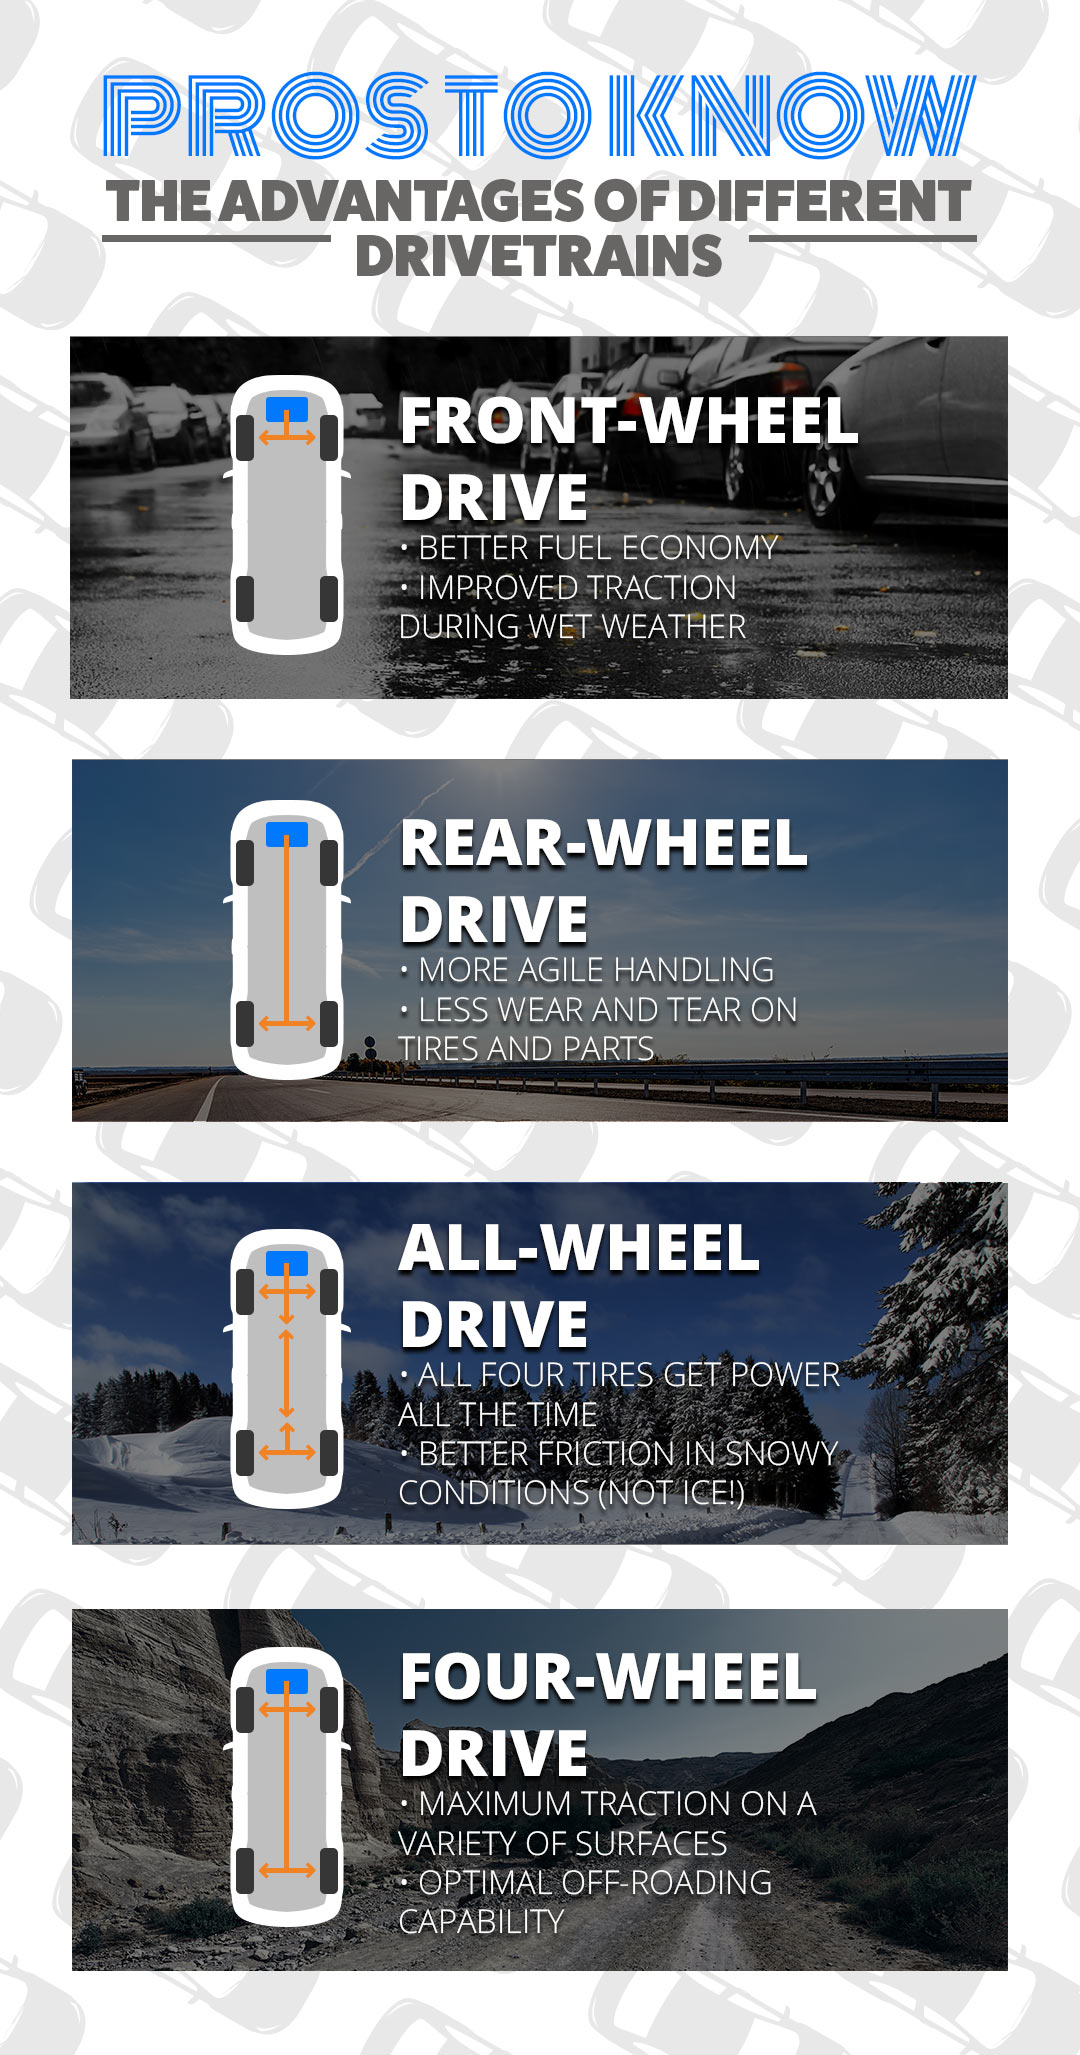 An infographic showing the four main types of drivetrains and their benefits